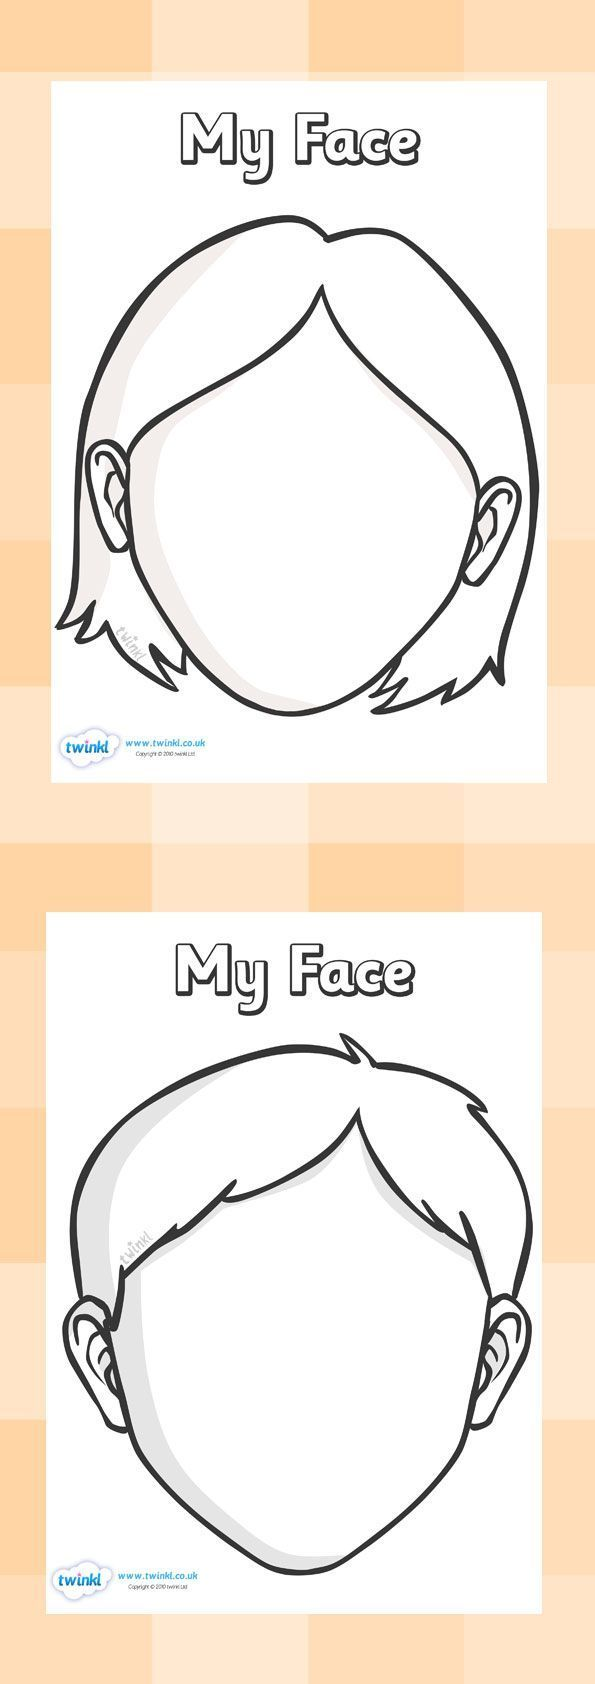 Blank Faces Templates. Free Printables - Children can draw things that 'represent' them in the faces.